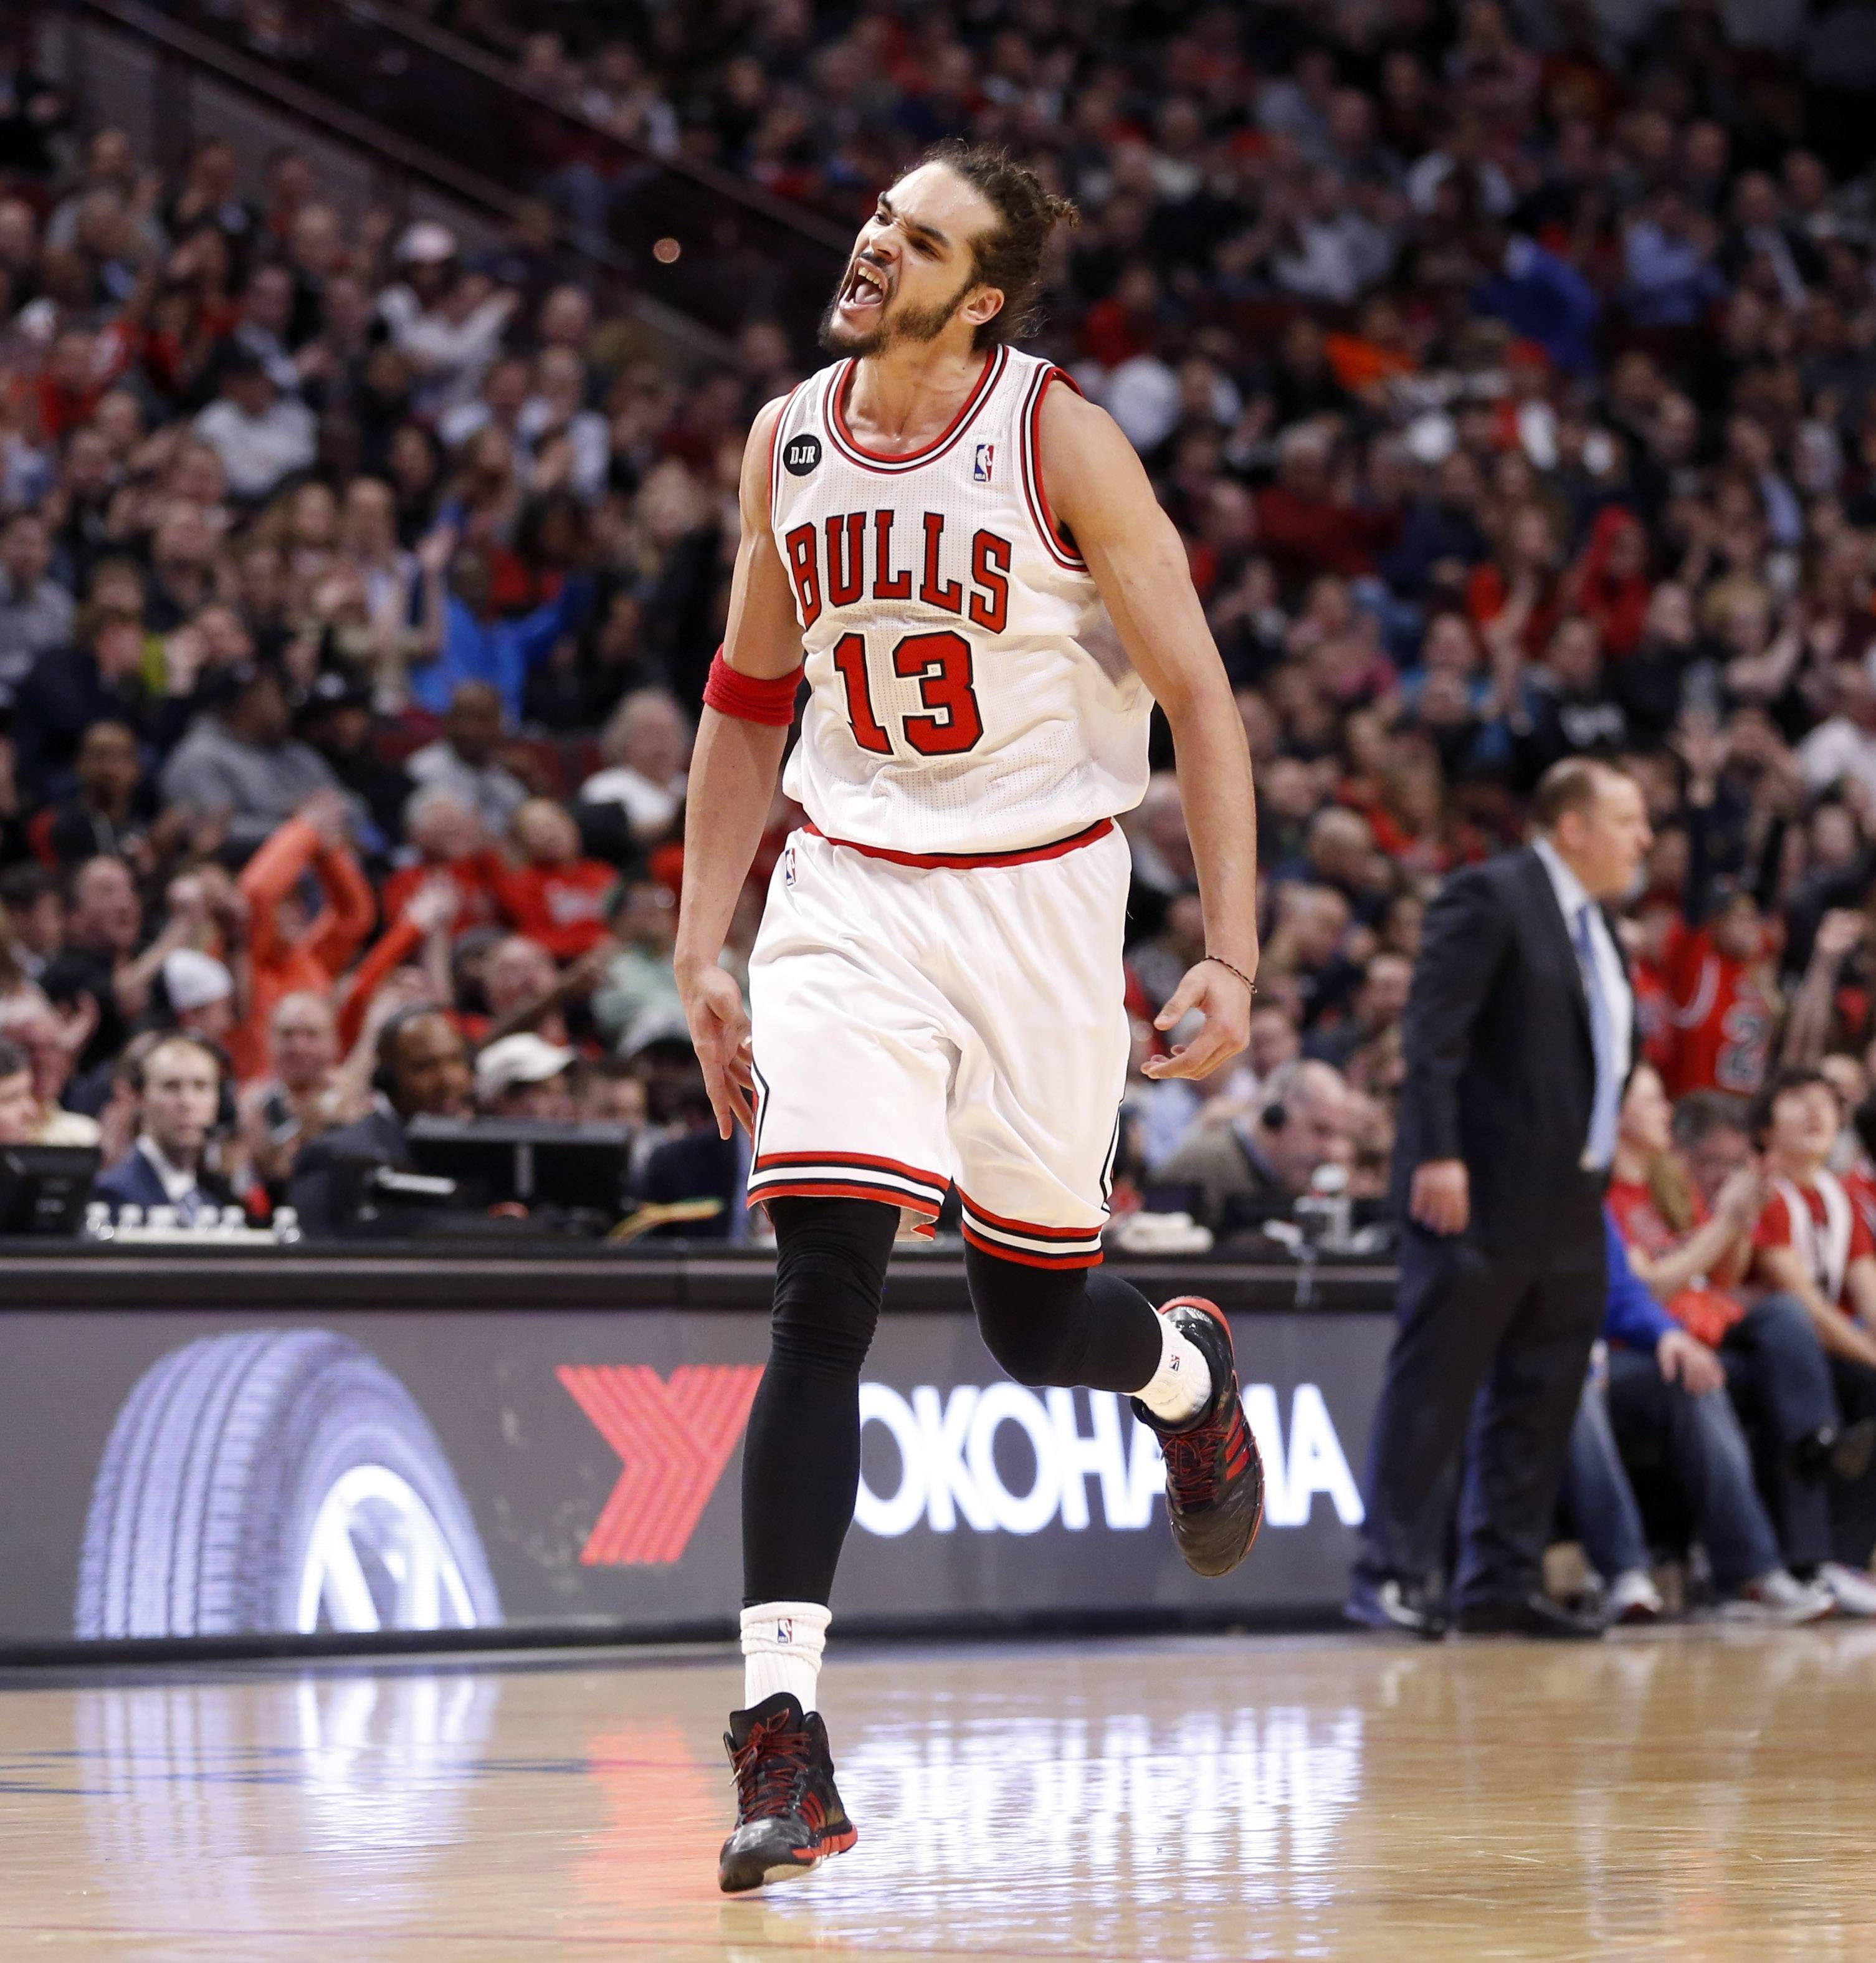 Chicago Bulls center Joakim Noah (13) celebrates the Bulls' expanding lead on the Indiana Pacers during the second half of an NBA basketball game Monday, March 24, 2014, in Chicago. The Bulls won 89-77. (AP Photo/Charles Rex Arbogast)